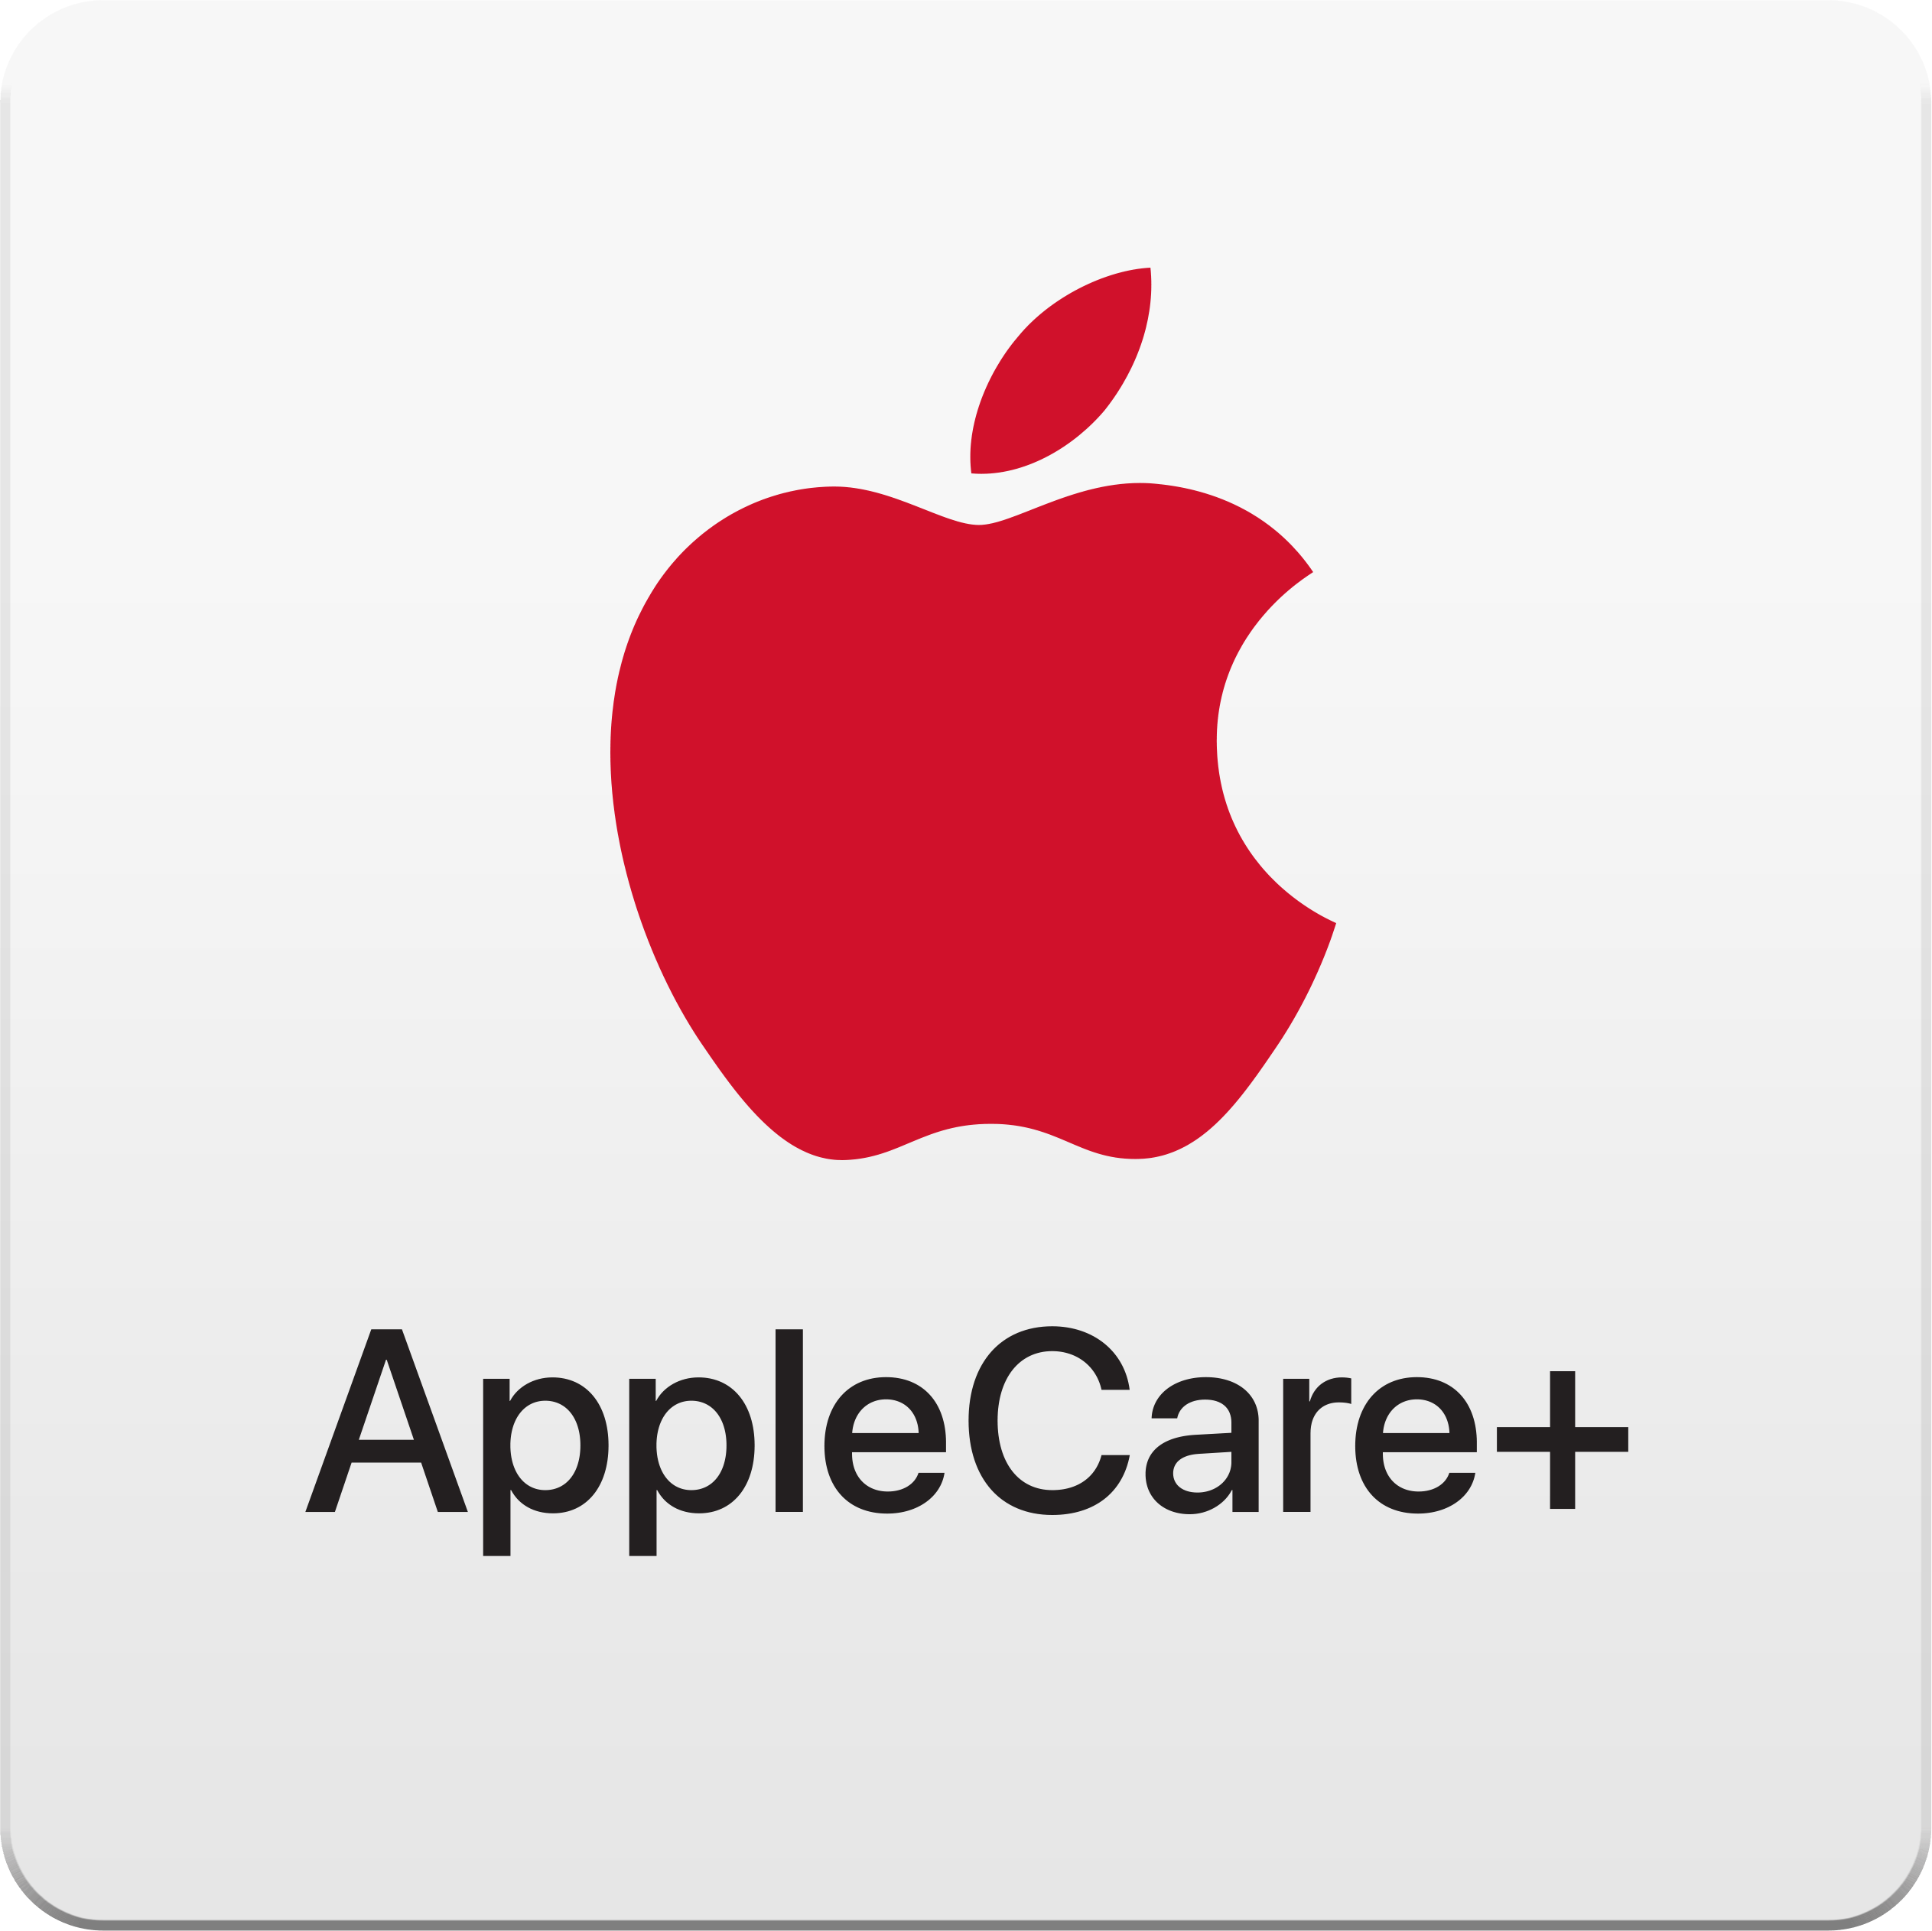 AppleCare+ for iPhone 8. iPhone 7, iPhone 6s, and iPhone 6